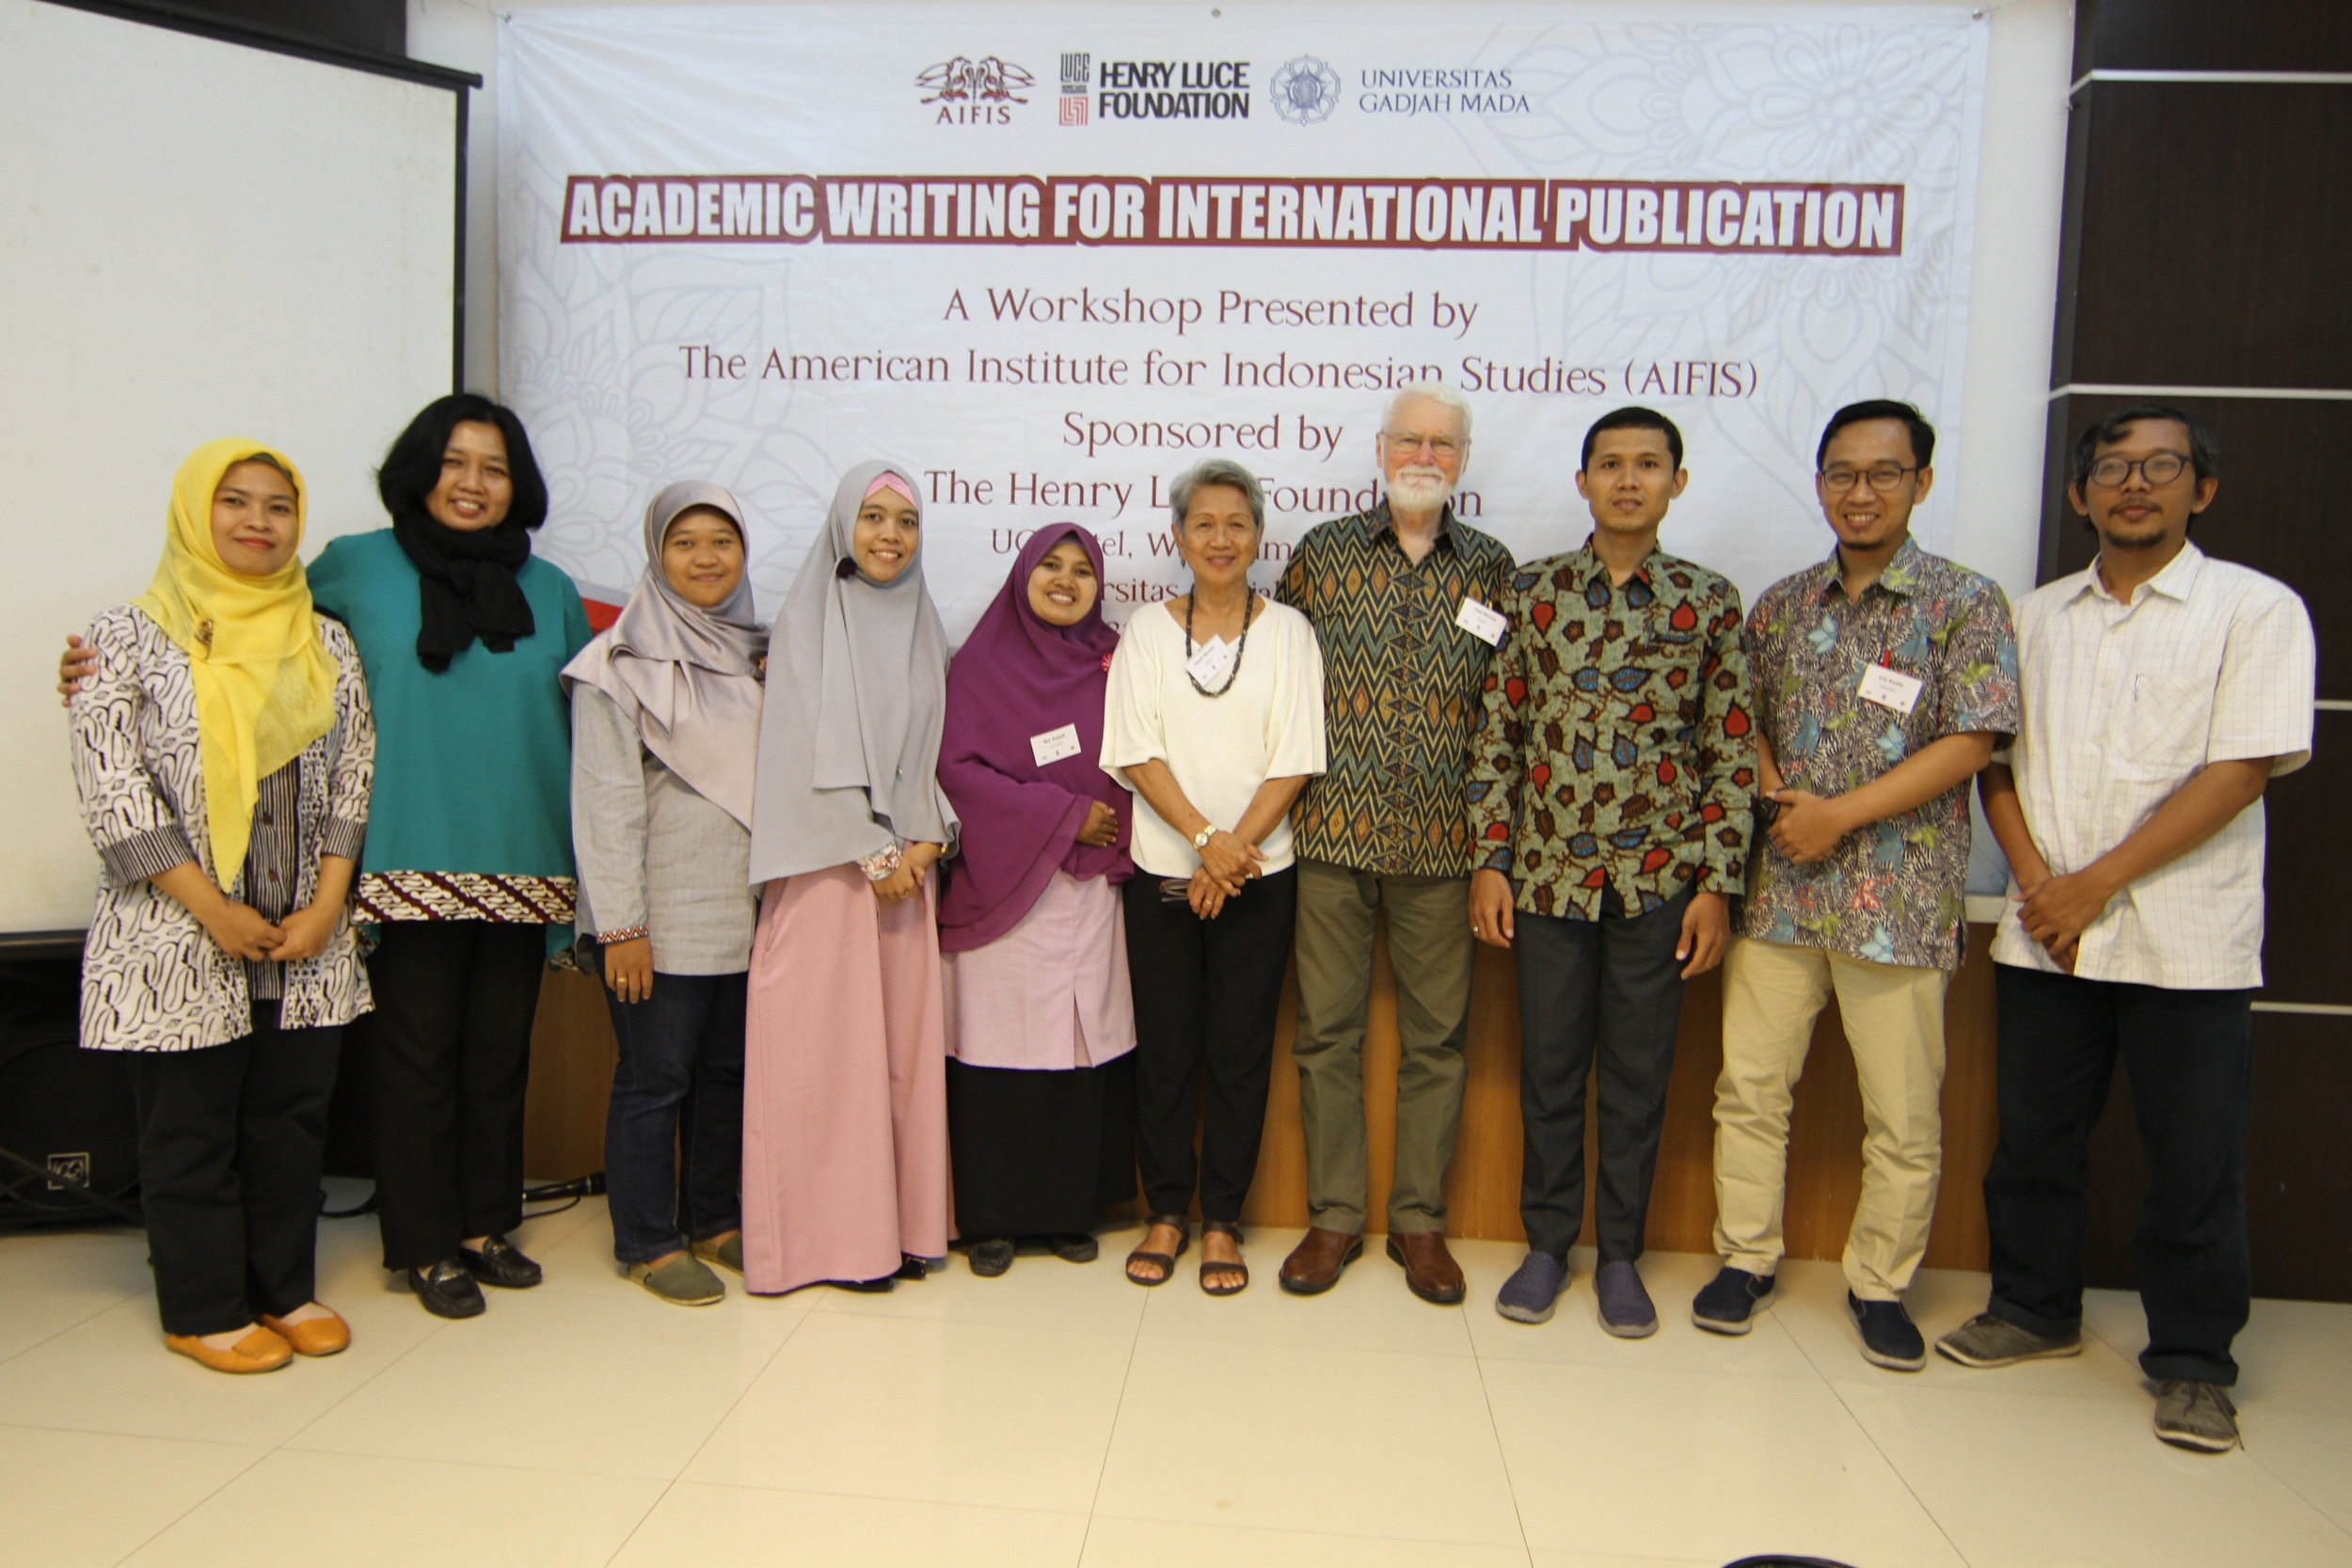 12. Academic Writing for International Publication at  Universitas Gadjah Mada Yogyakarta with Paul Kratoska.JPG